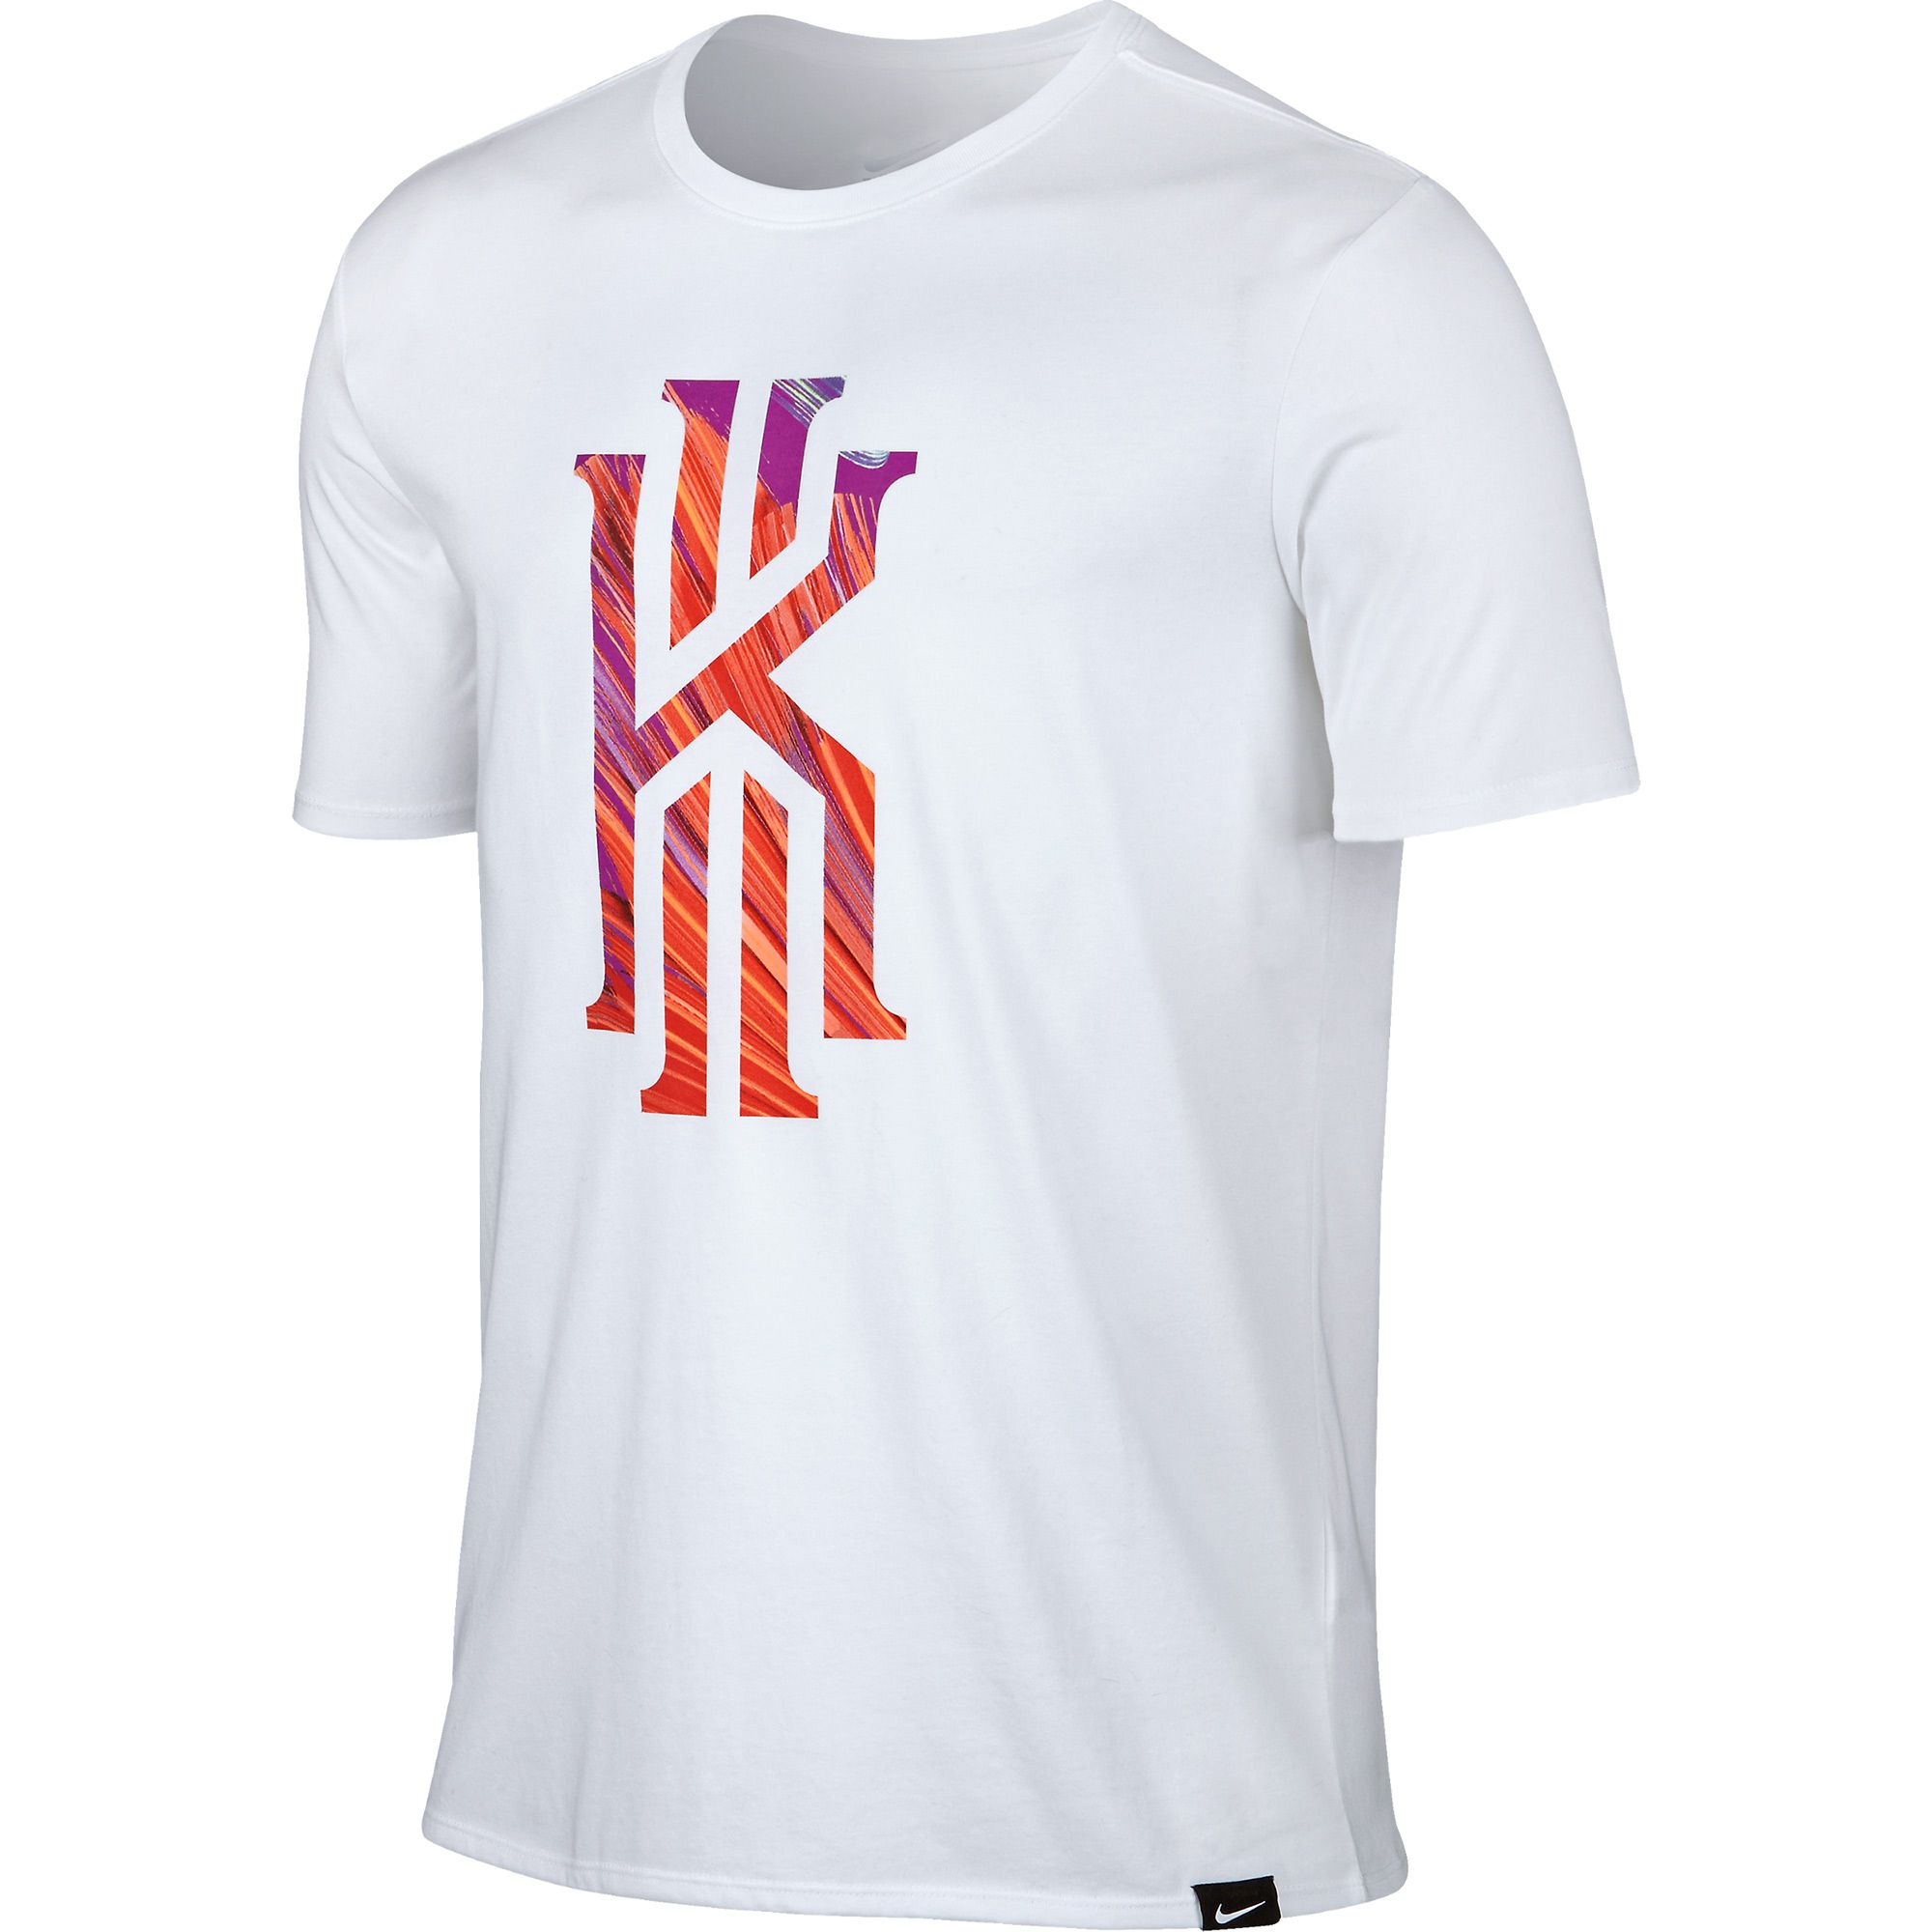 pretty nice 58c06 bb24c NBA Nike Cleveland Cavaliers White Kyrie Irving 2 T-Shirt